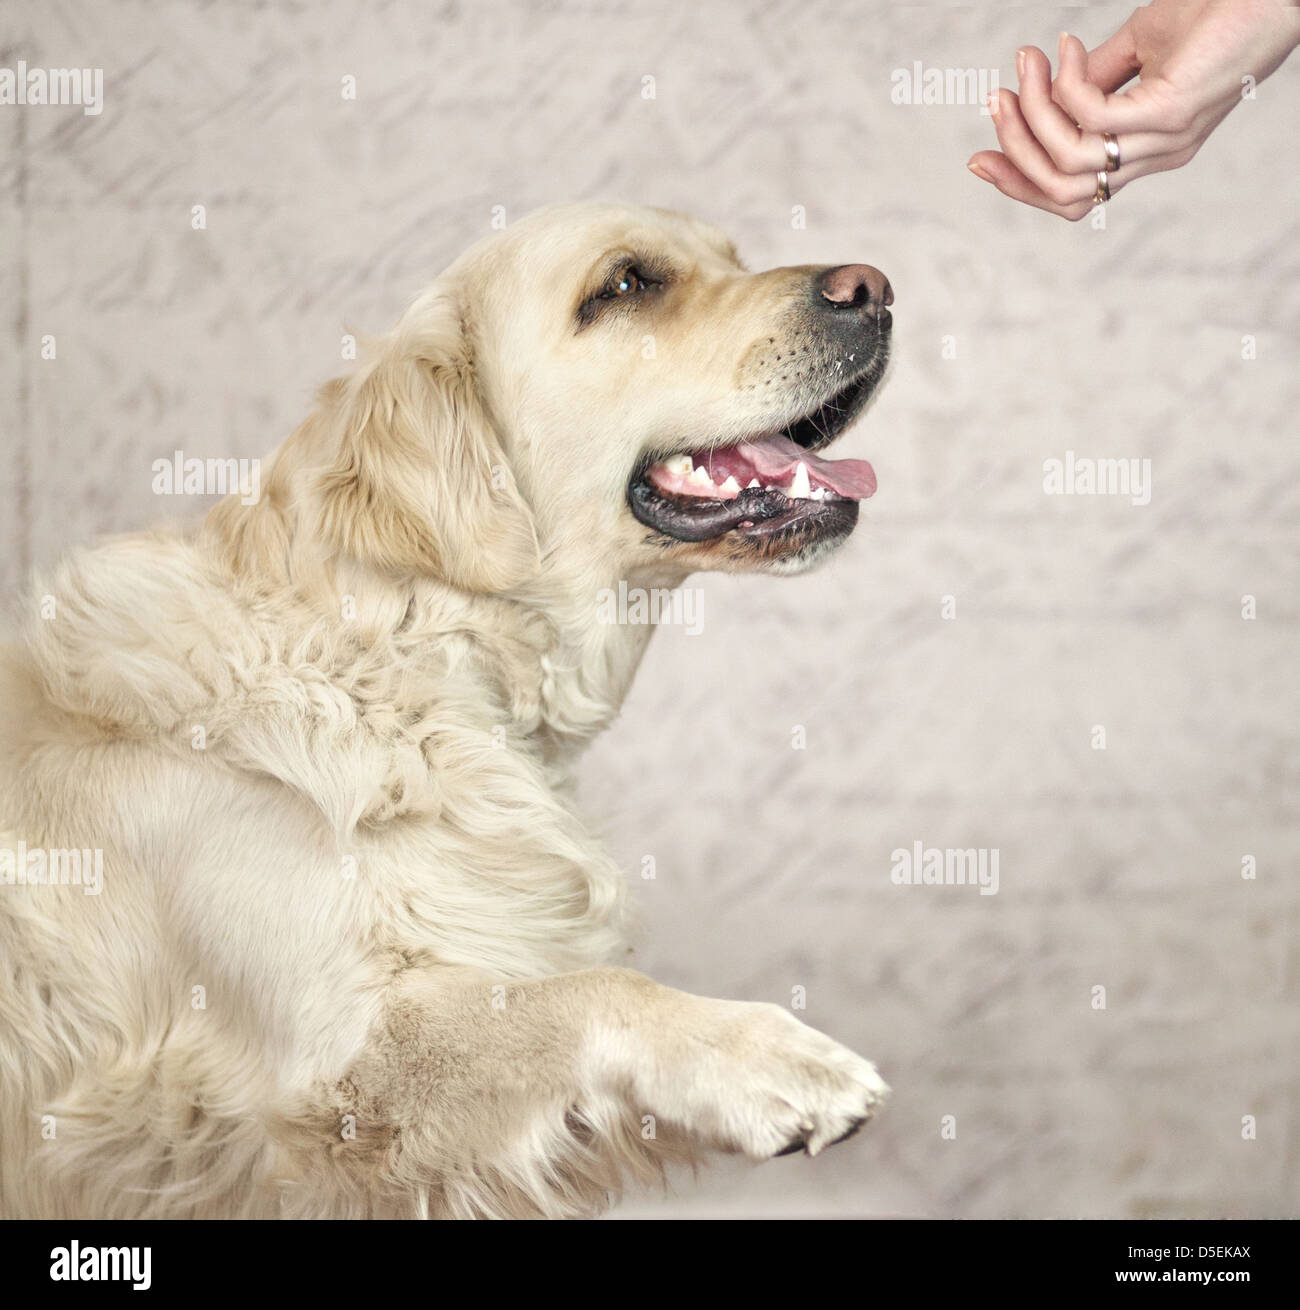 Master wanting to greet with friendly dog - Stock Image